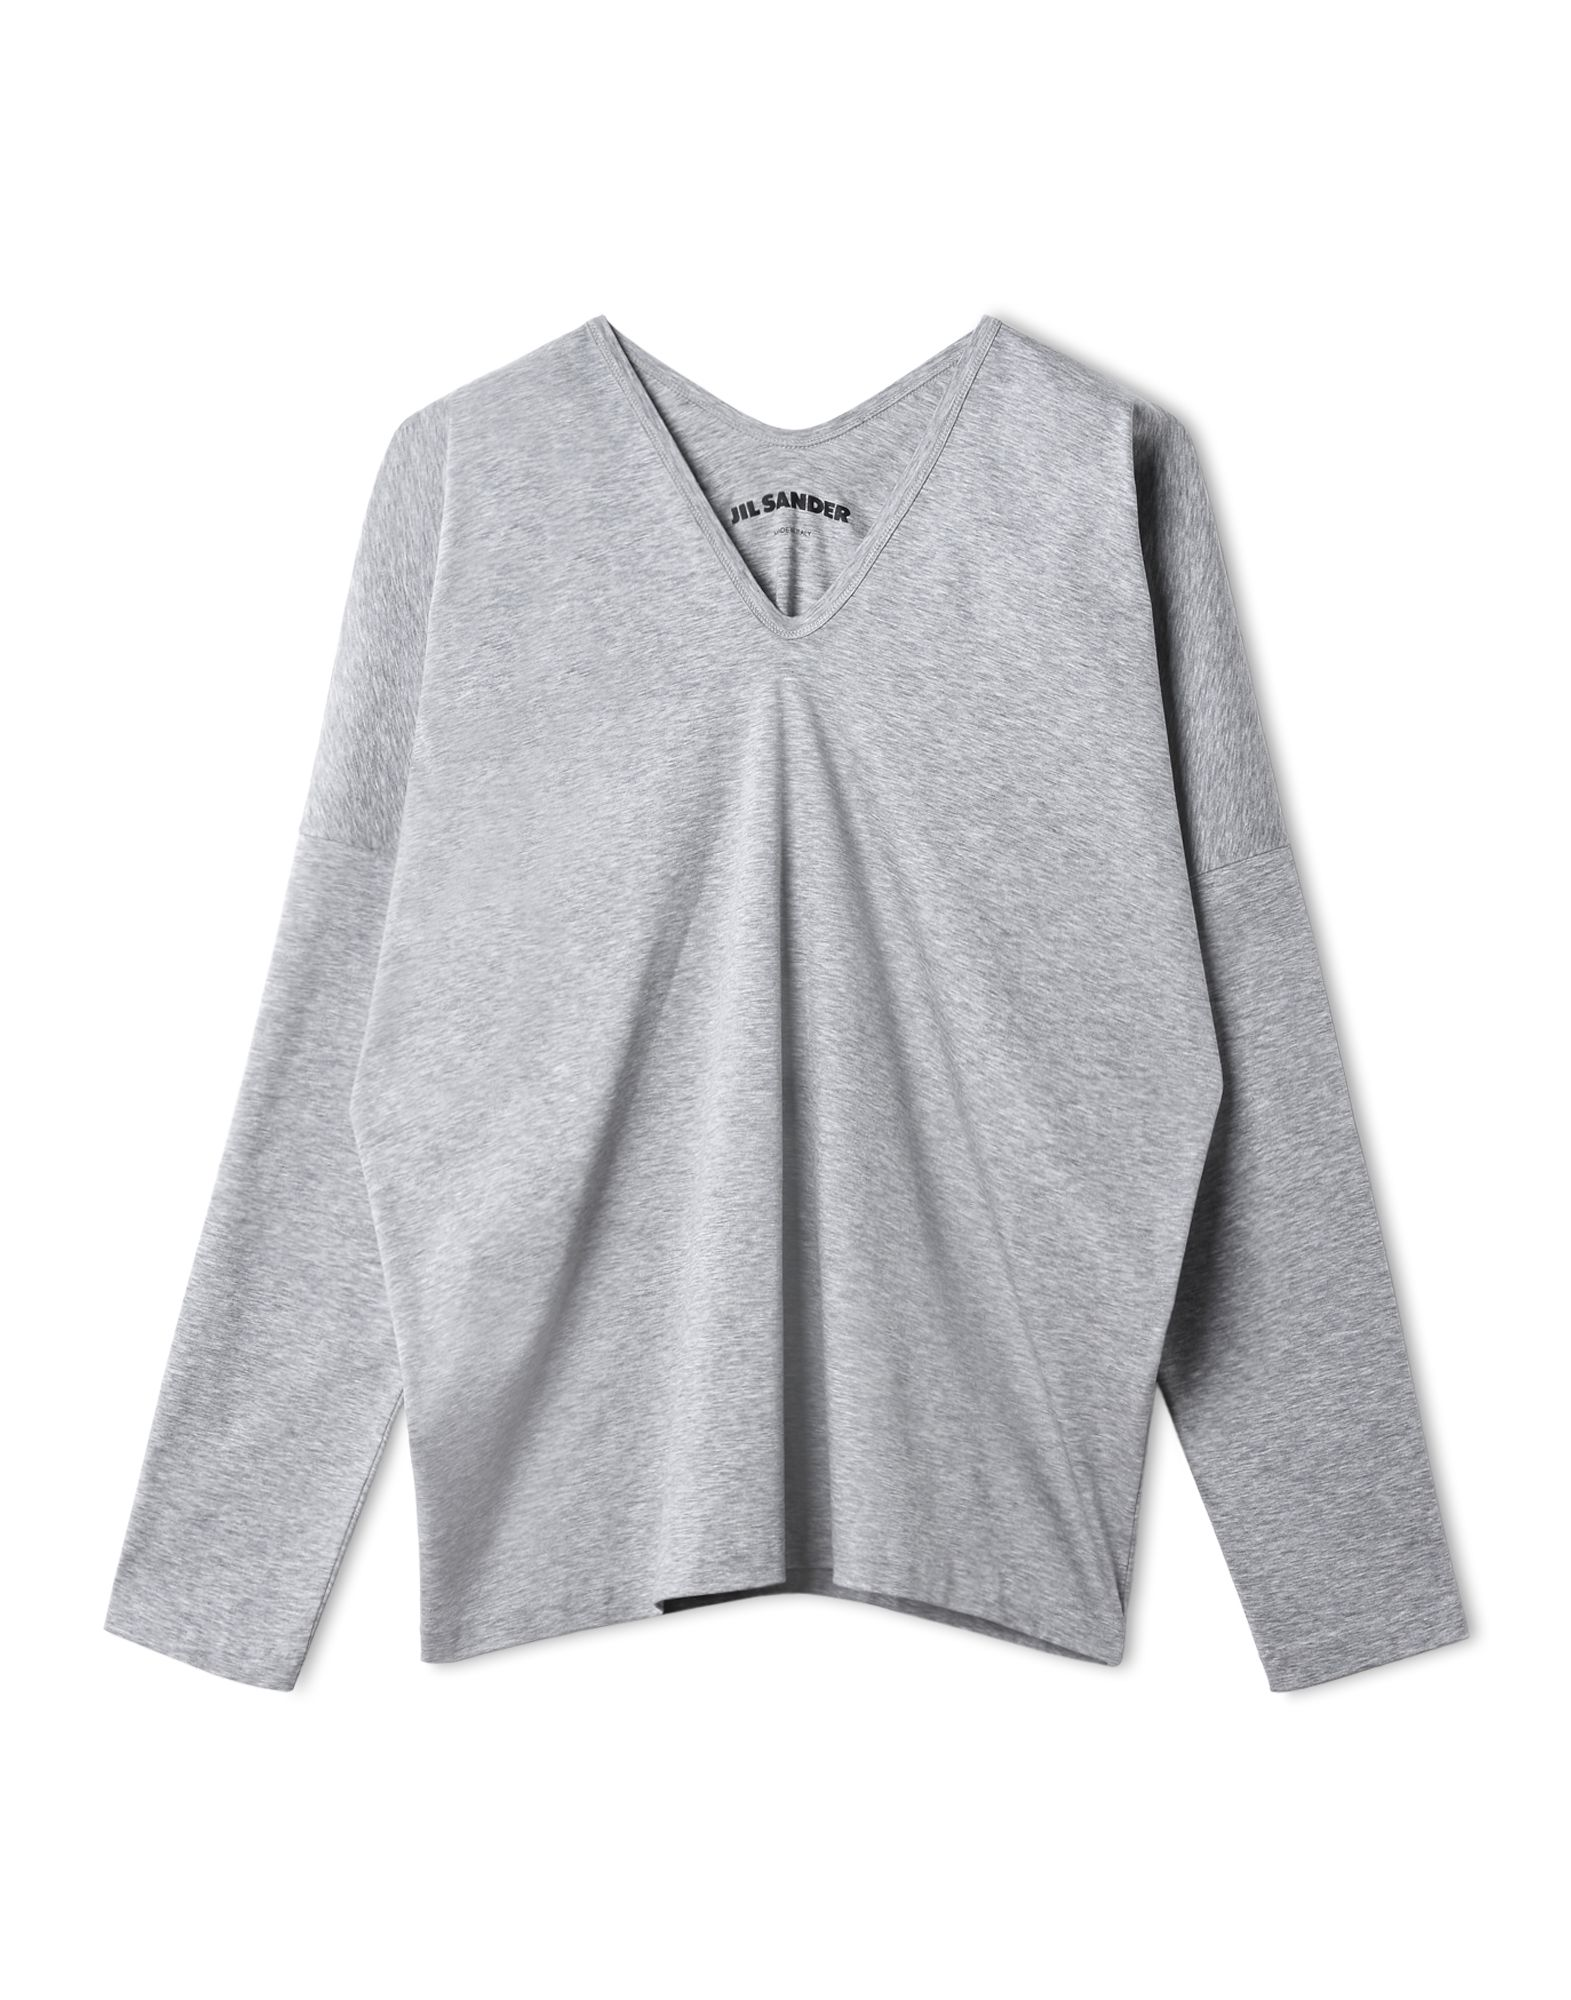 TOP - LIGHT GREY